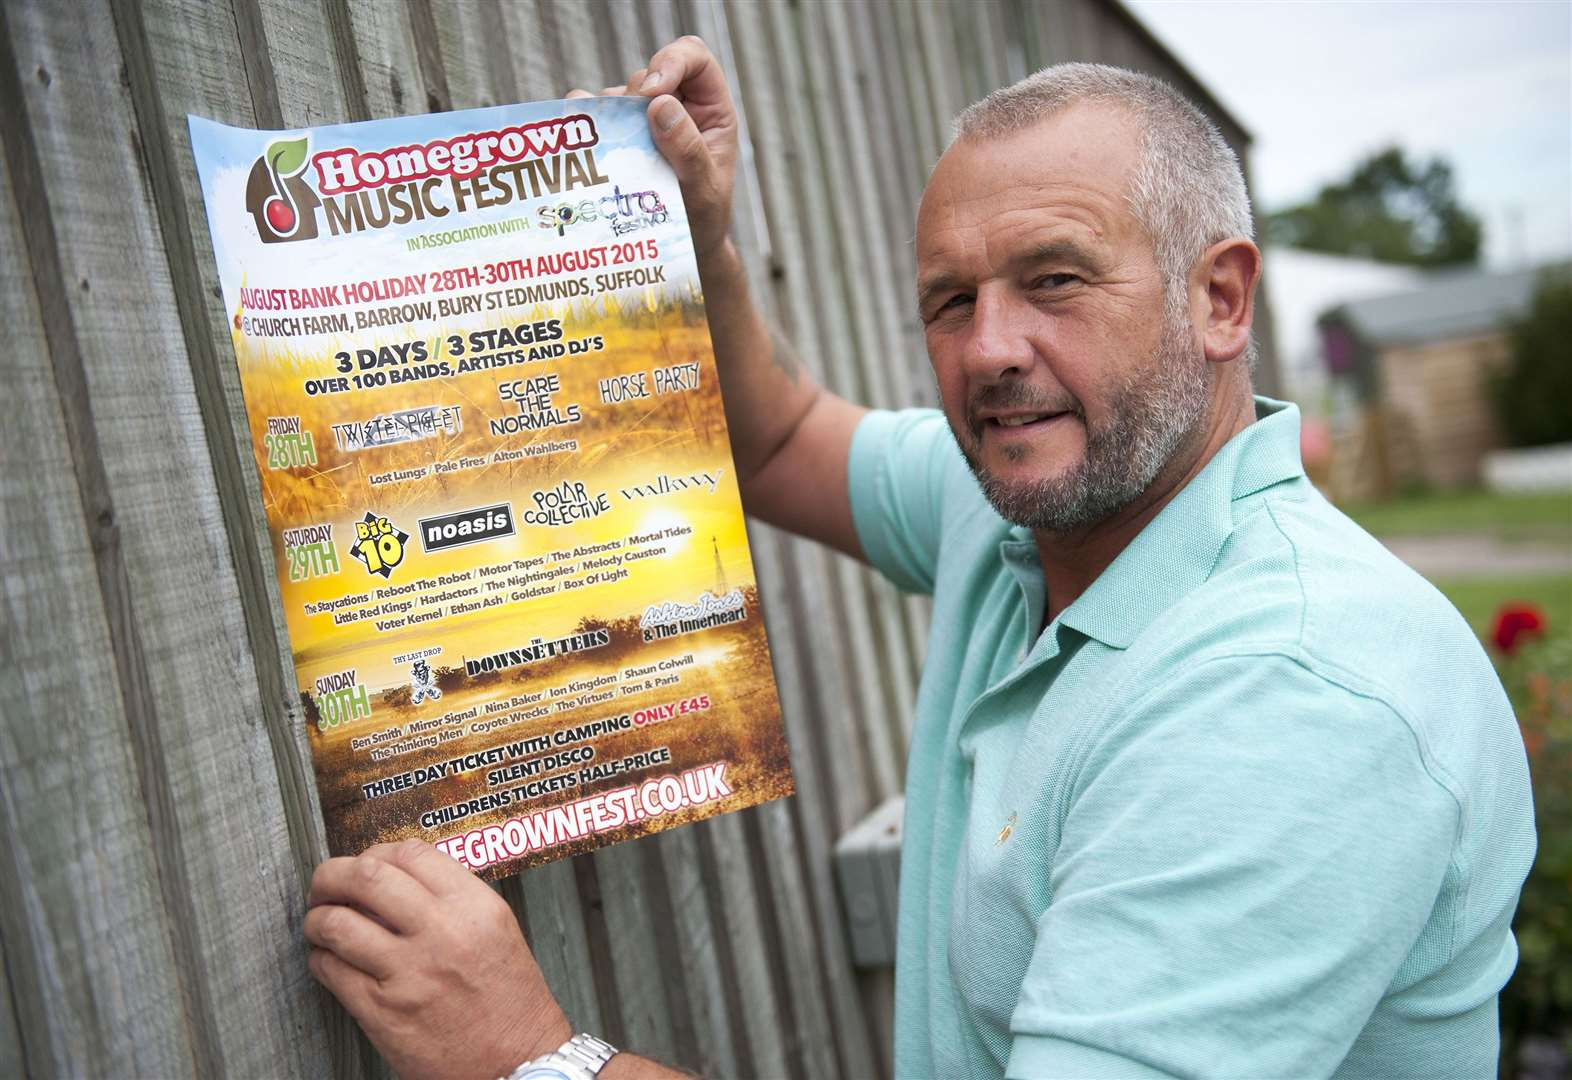 Homegrown manager explains why Barrow music festival has closed